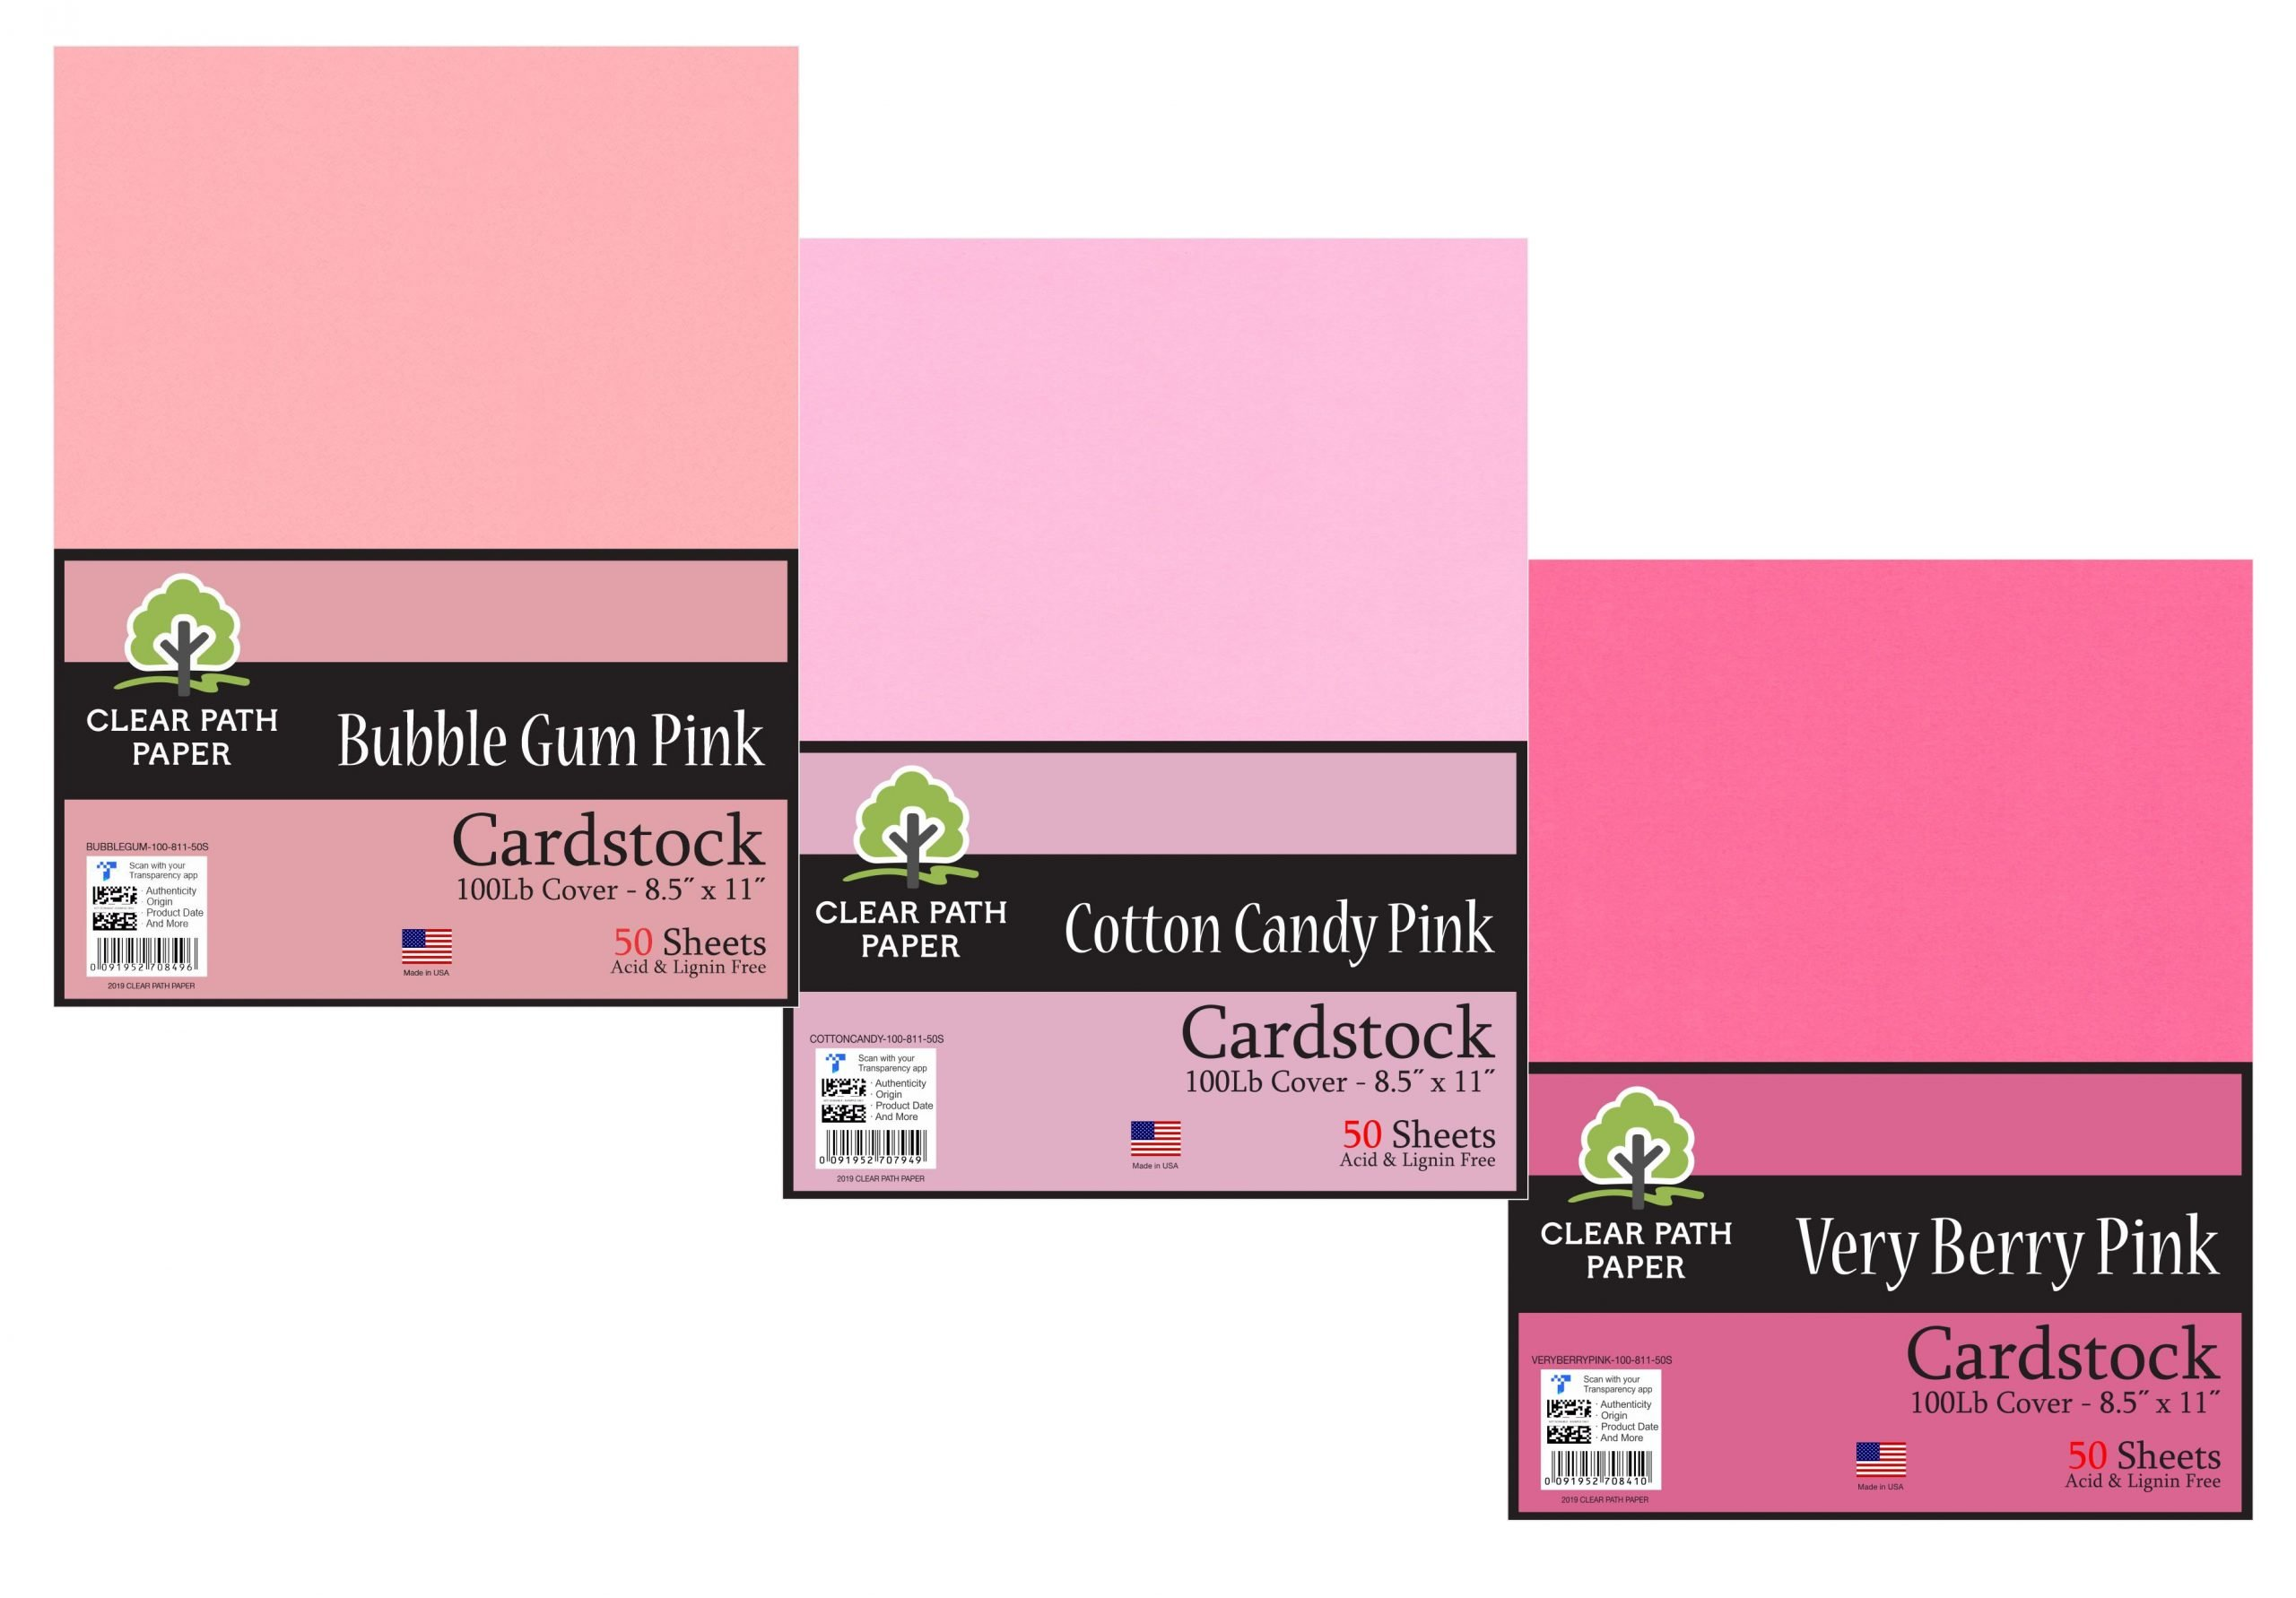 Cotton Candy Pink / Bubble Gum Pink / Very Berry Pink